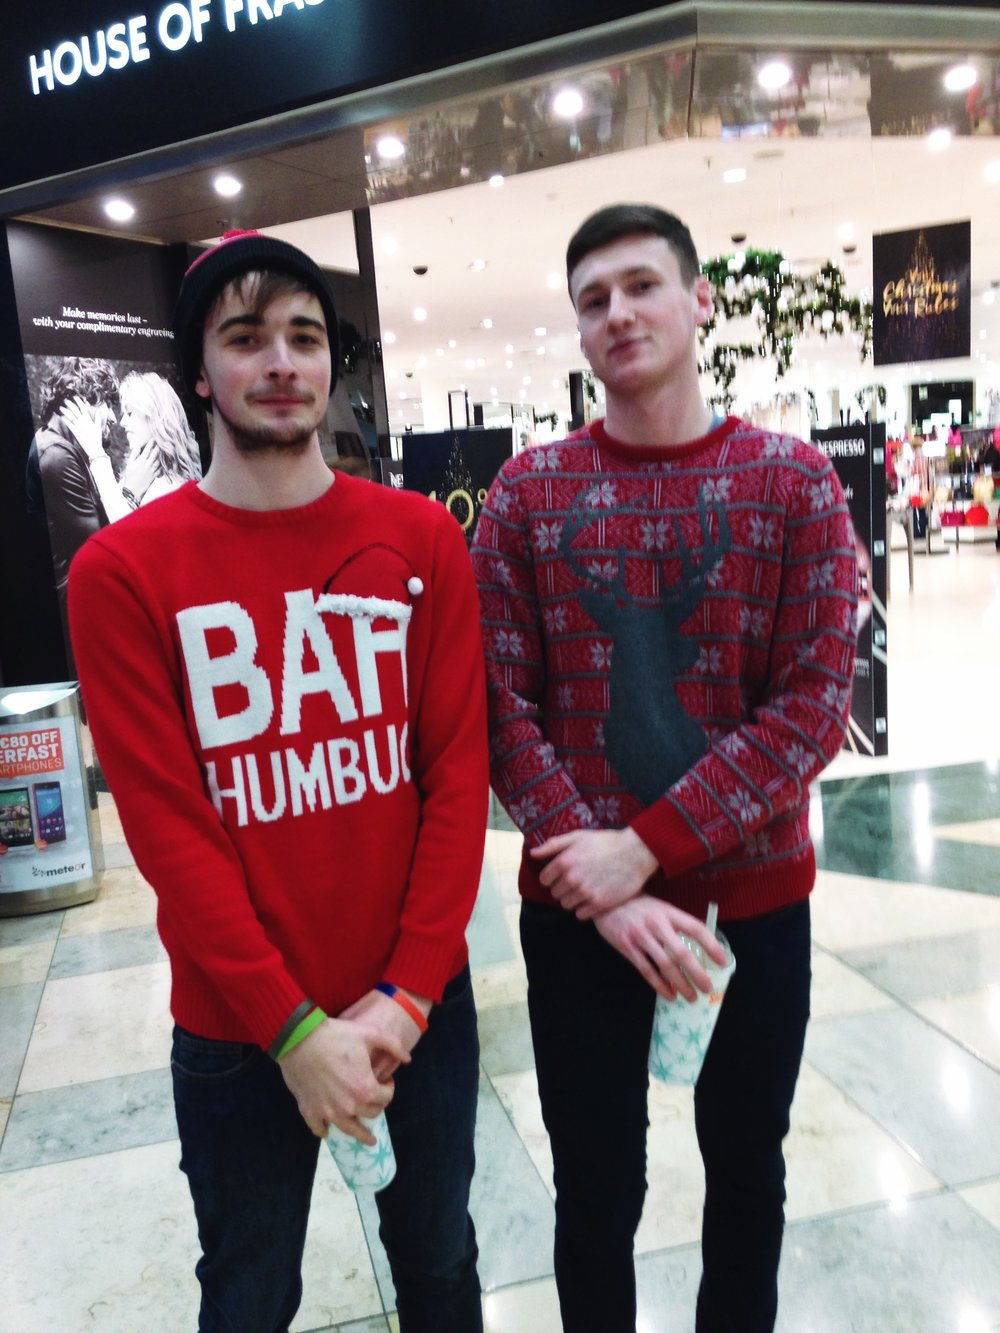 Joe, Penneys/Primark Christmas Jumper . Barry M&S Christmas Jumpers. Looking cool Guys!